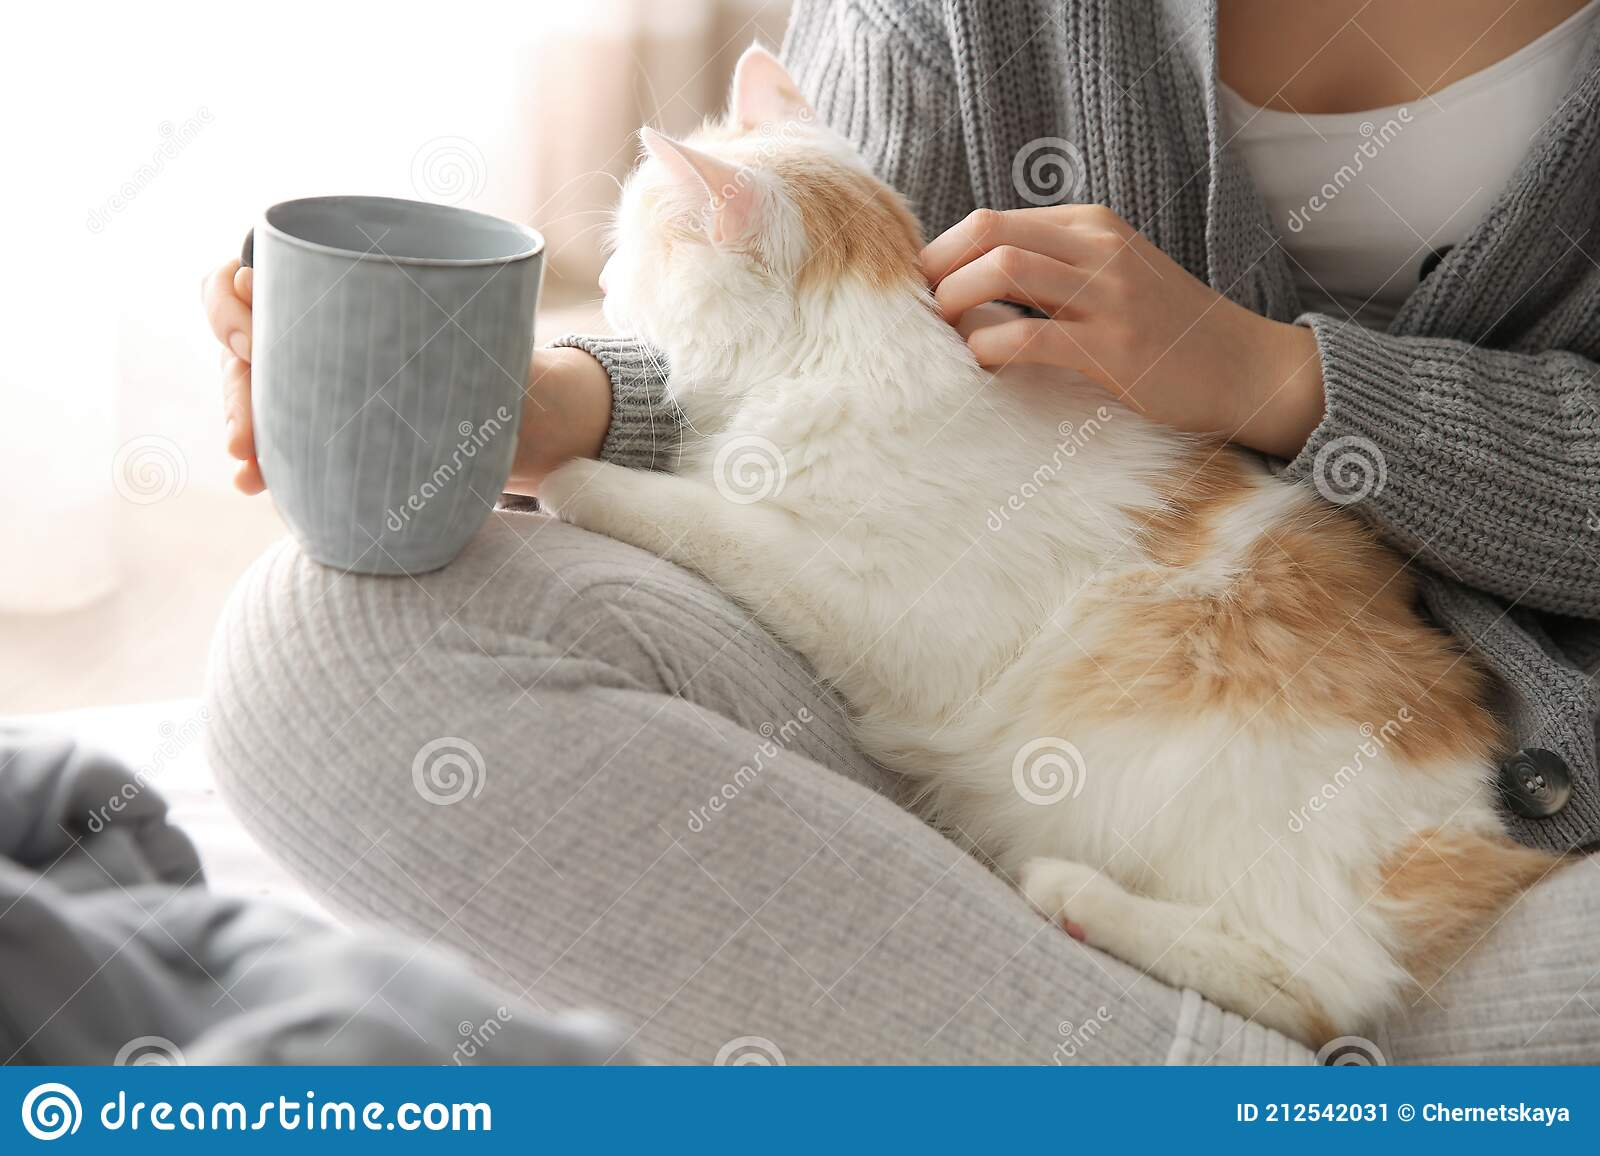 2 691 Cat Tea Photos Free Royalty Free Stock Photos From Dreamstime